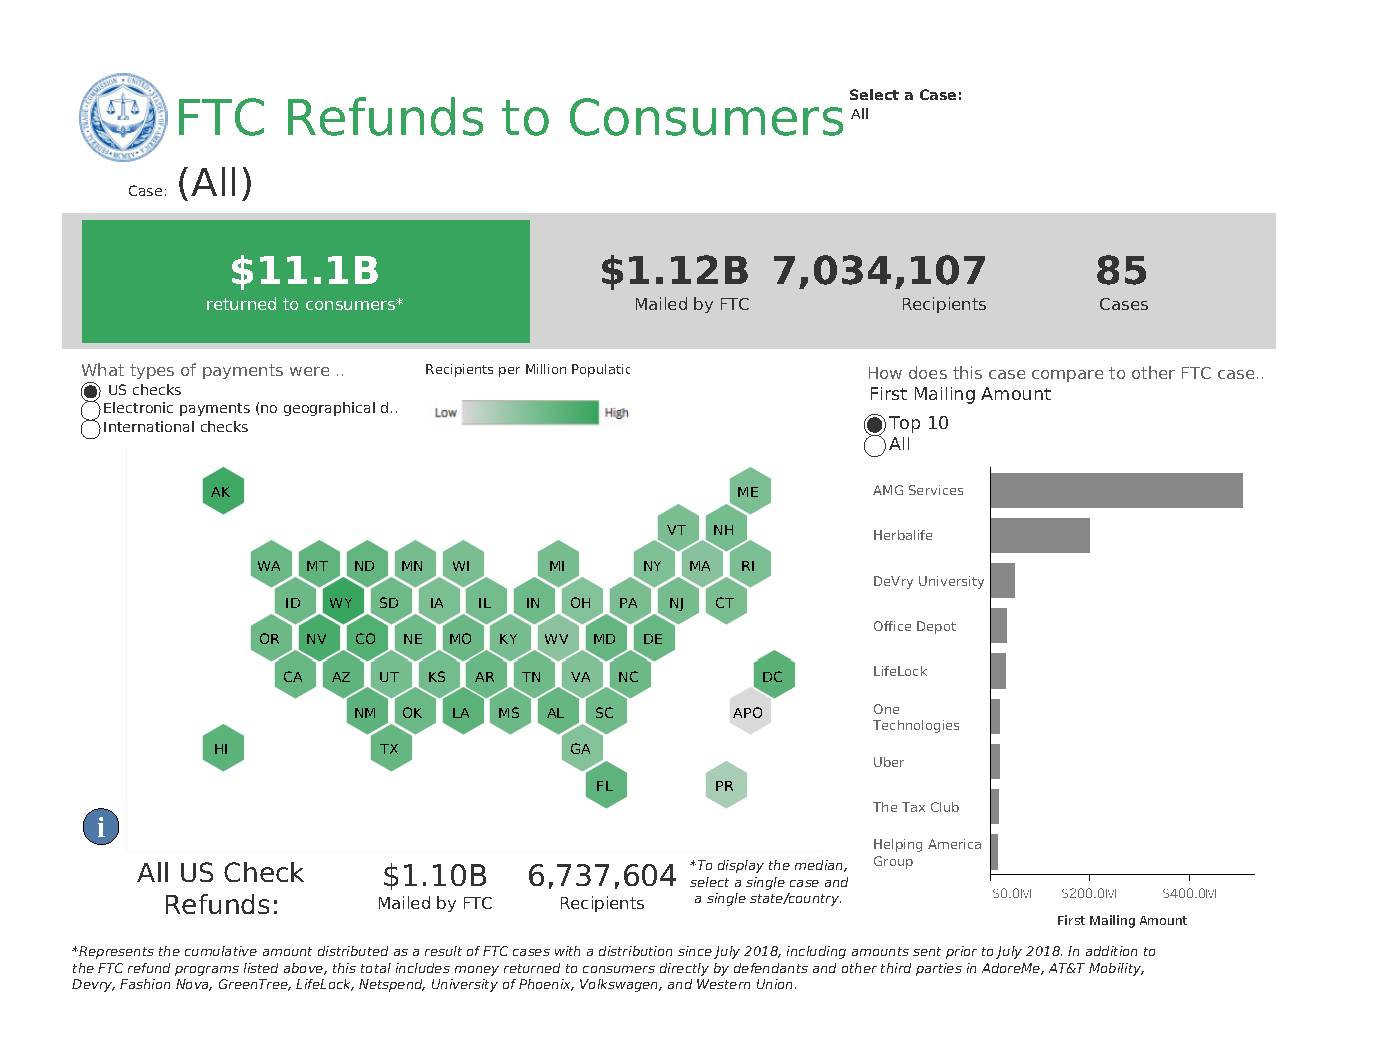 Link to interactive infographic of FTC Refunds to Consumers by case and location.